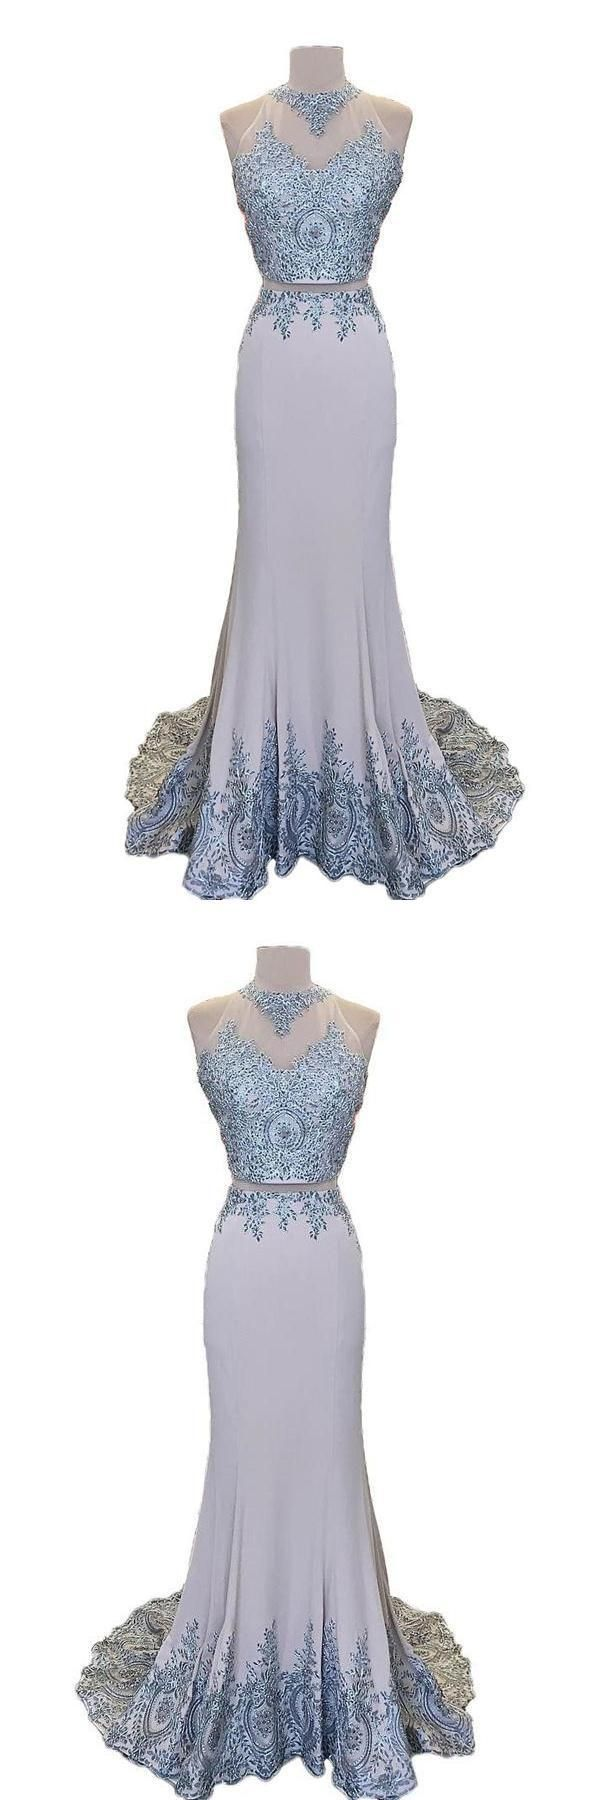 Mermaid prom dresses two pieces prom dresses cheap prom dresses